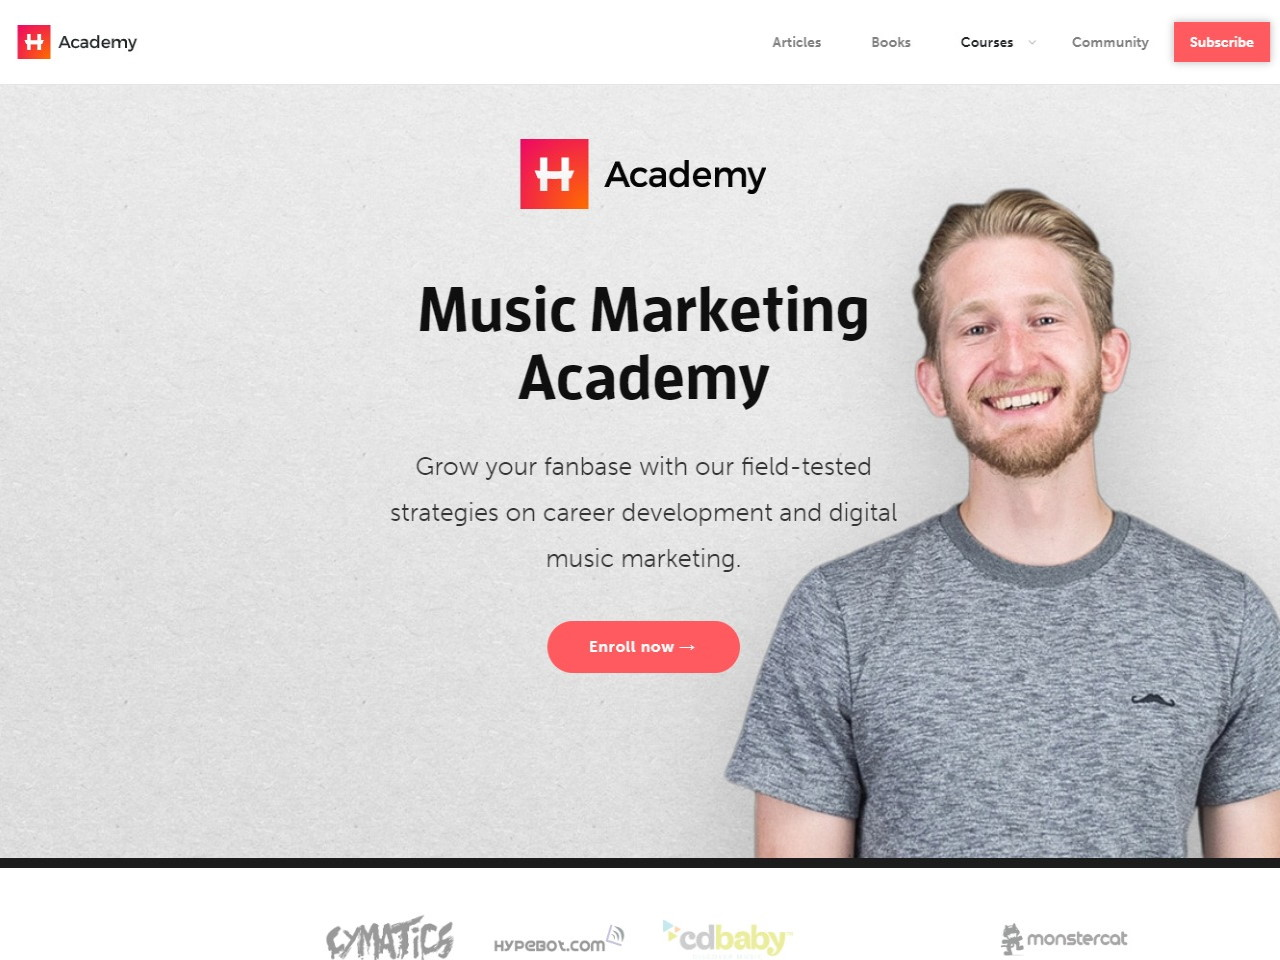 Heroic Academy - Music Marketing Academy